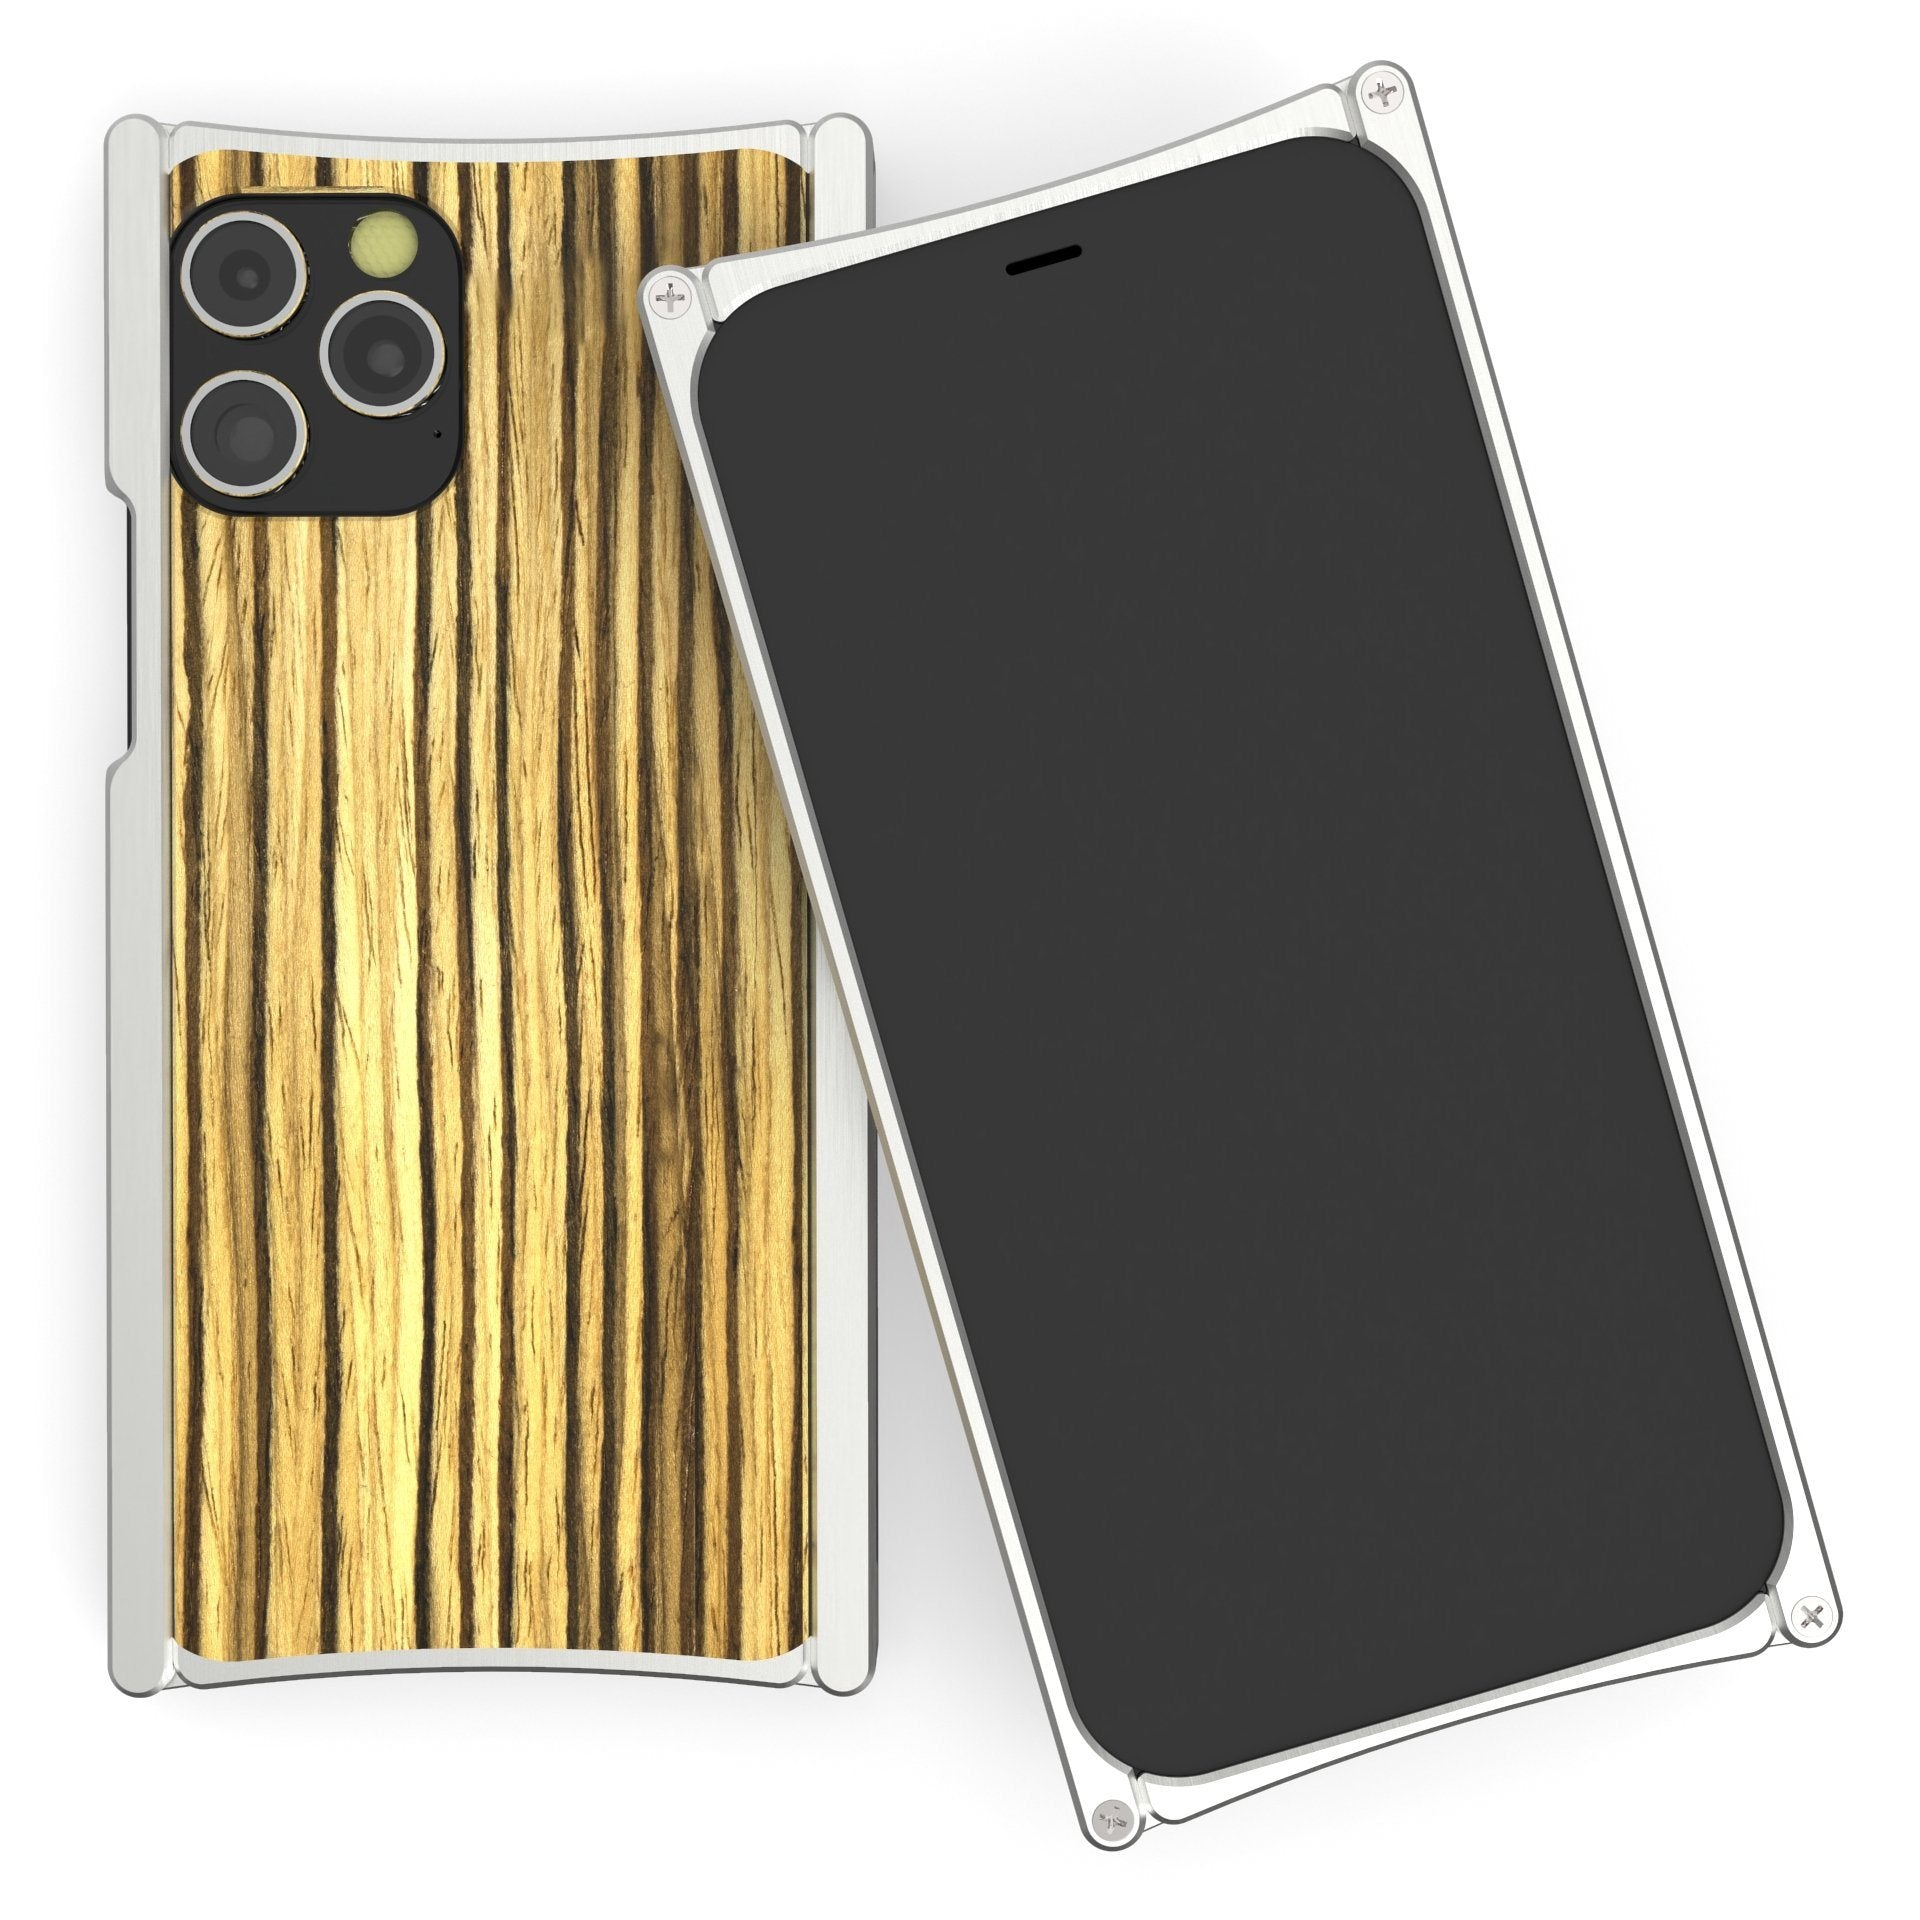 Europa 12 Pro Silver Aluminum and Zebra Wood